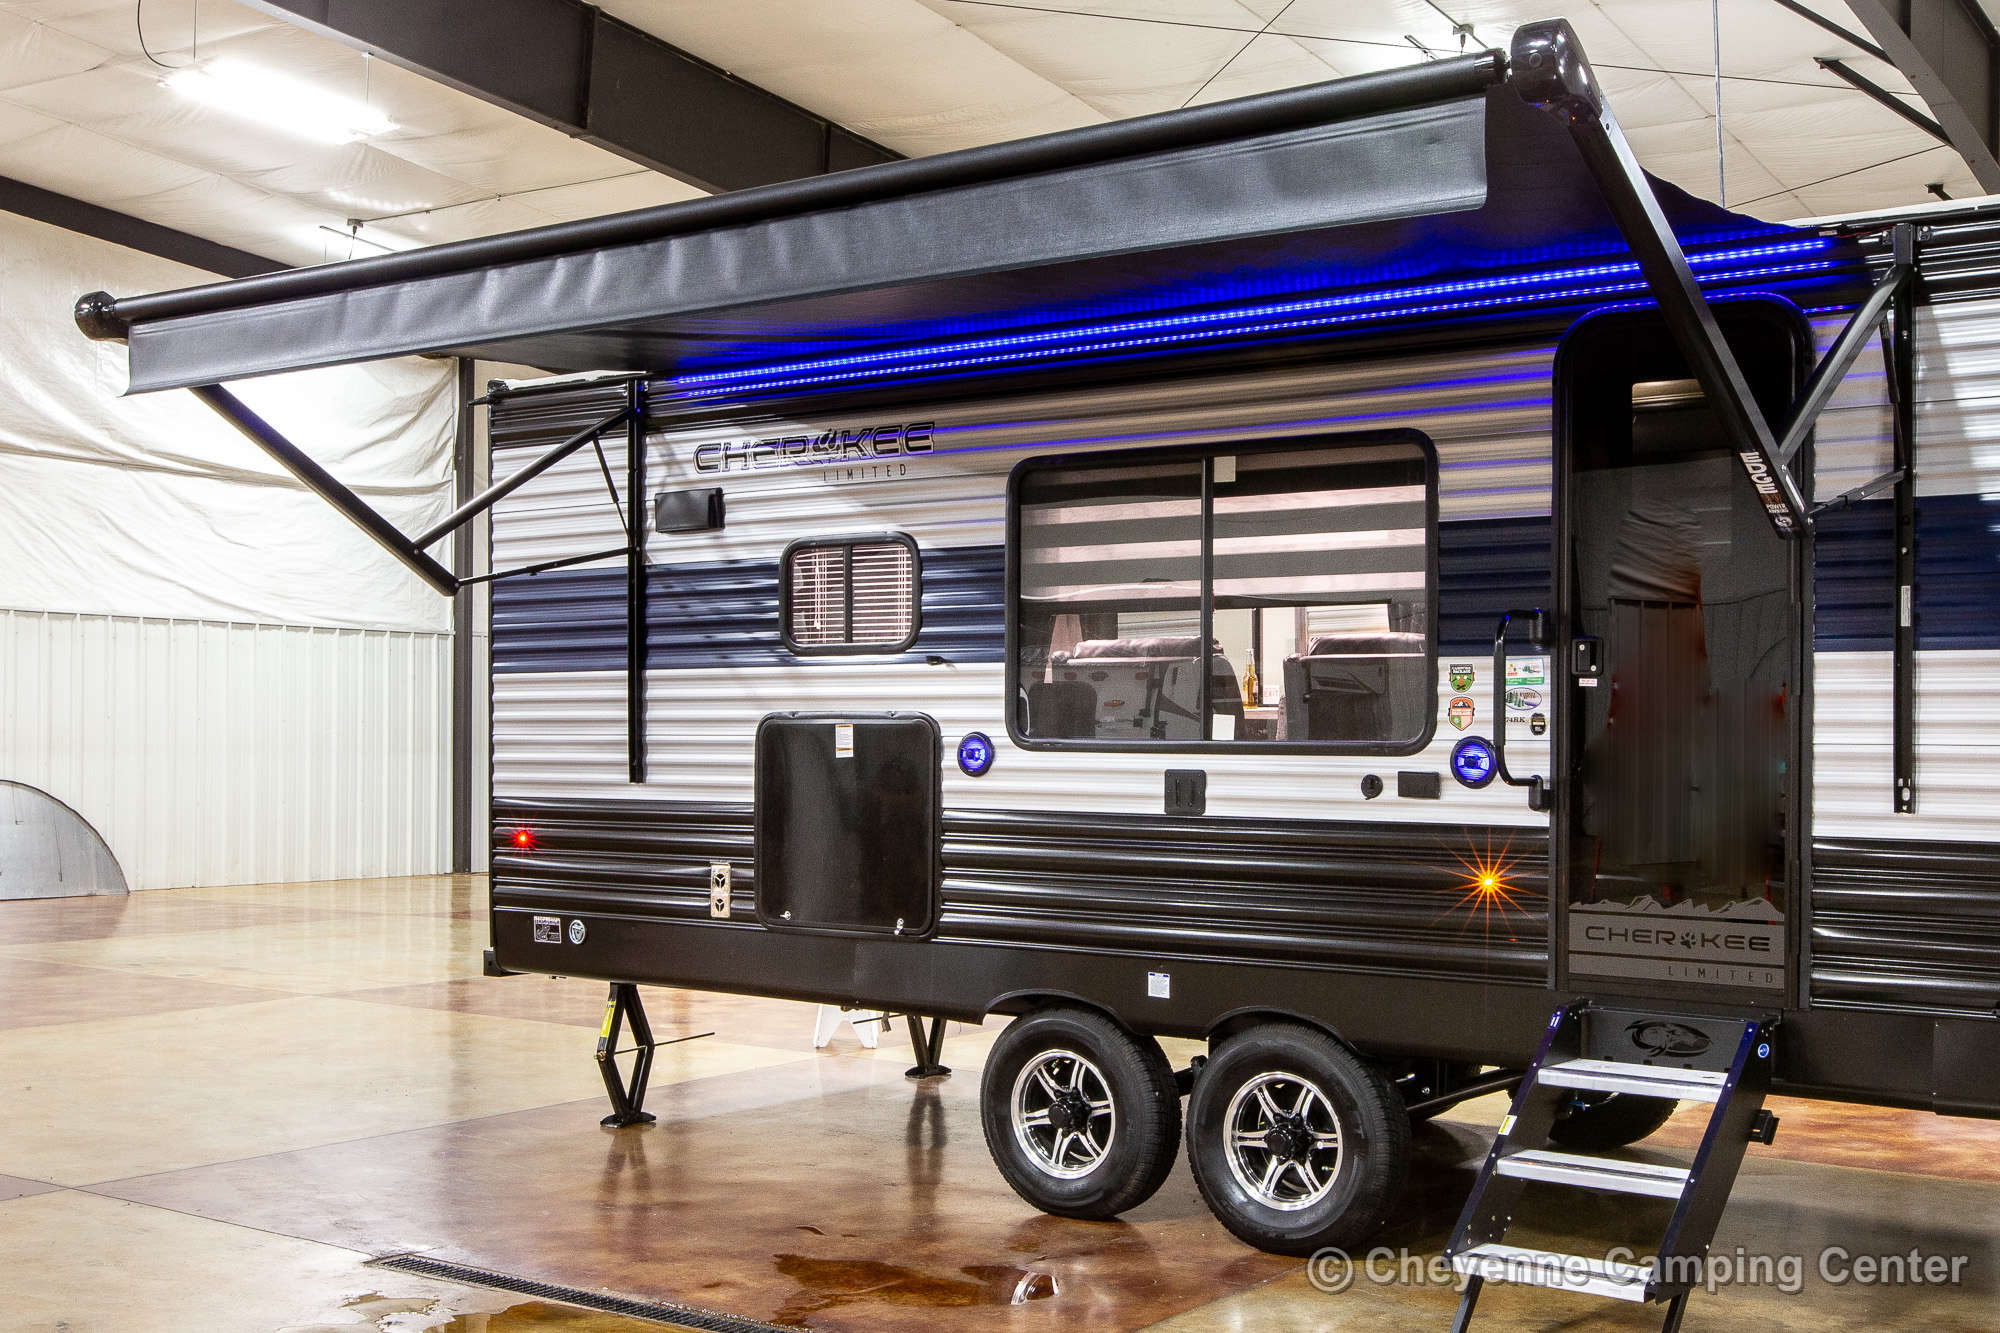 2022 Forest River Cherokee 274RK Travel Trailer Exterior Image